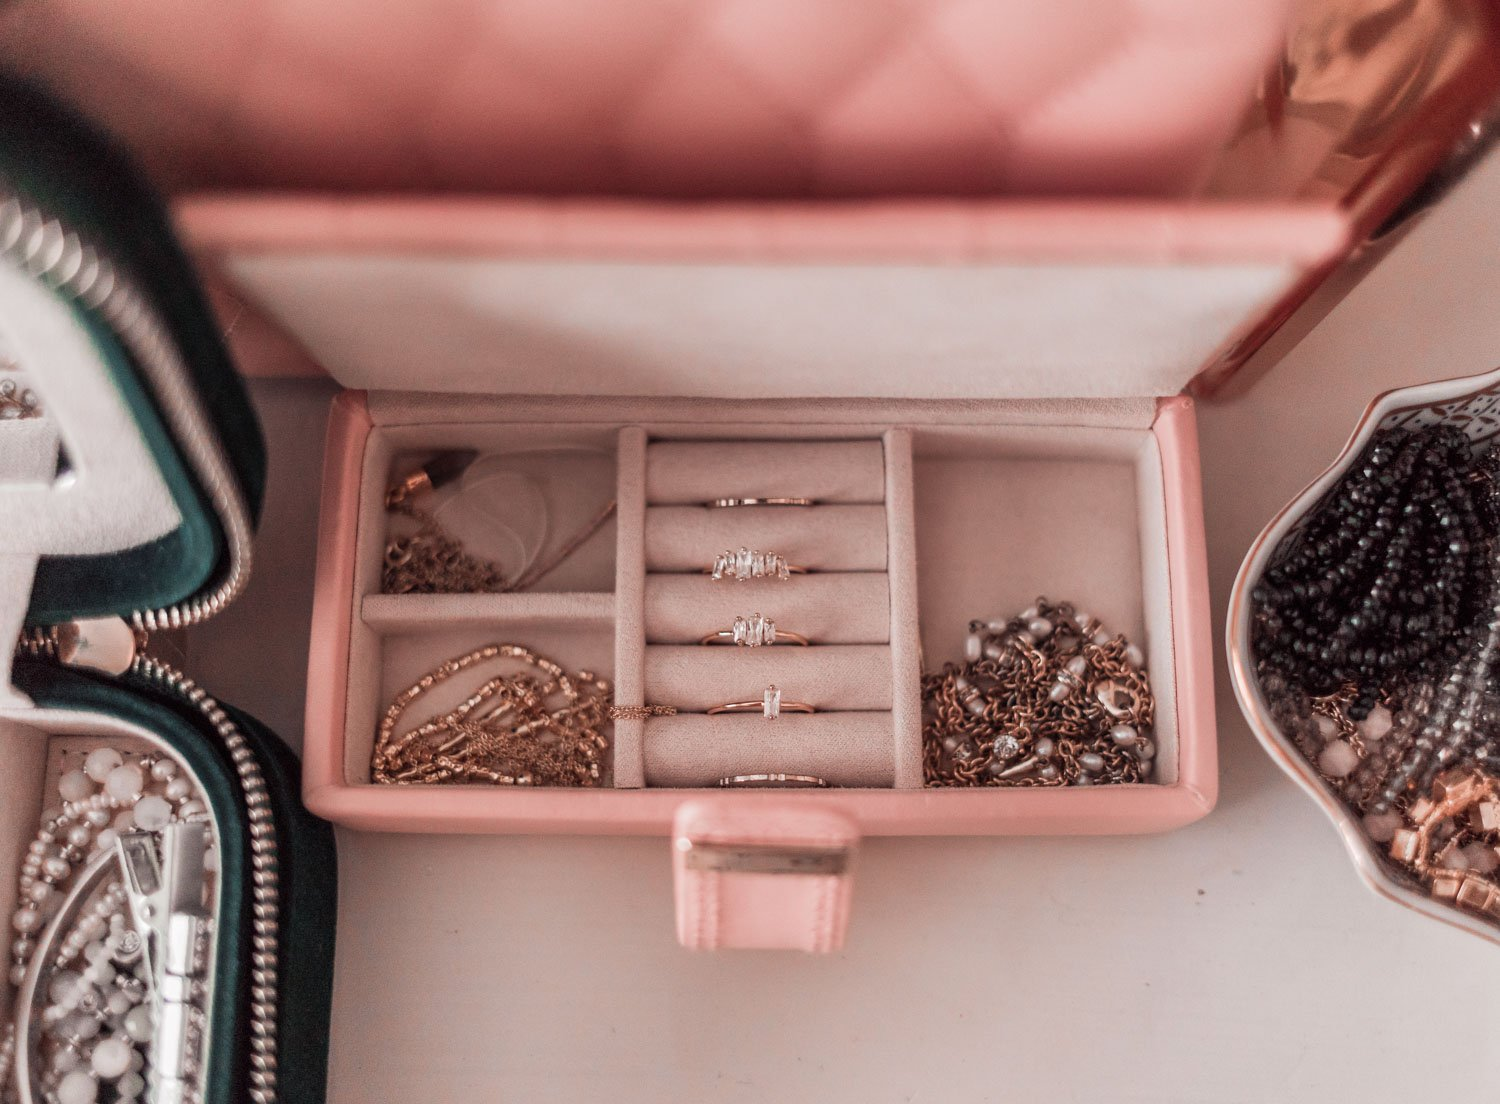 Fashion Blogger Elizabeth Hugen of Lizzie in Lace shares her girly jewelry collection and how she organizes it in her pink jewelry box